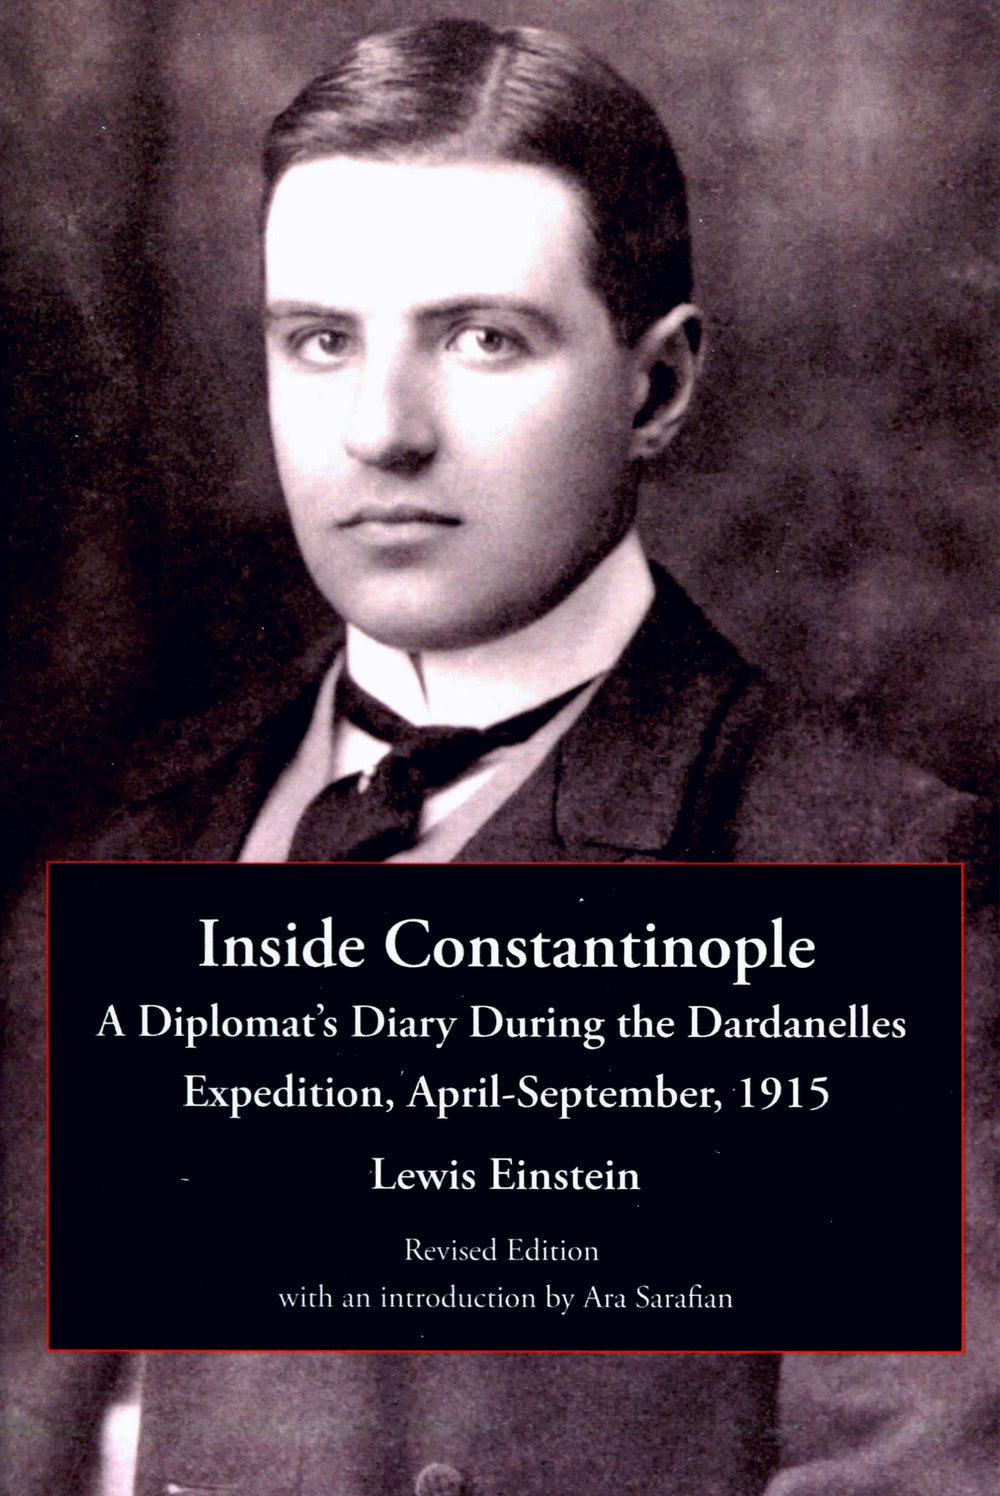 Inside Constantinople: A Diplomat's Diary During the Dardanelles Expedition, April-September, 1915